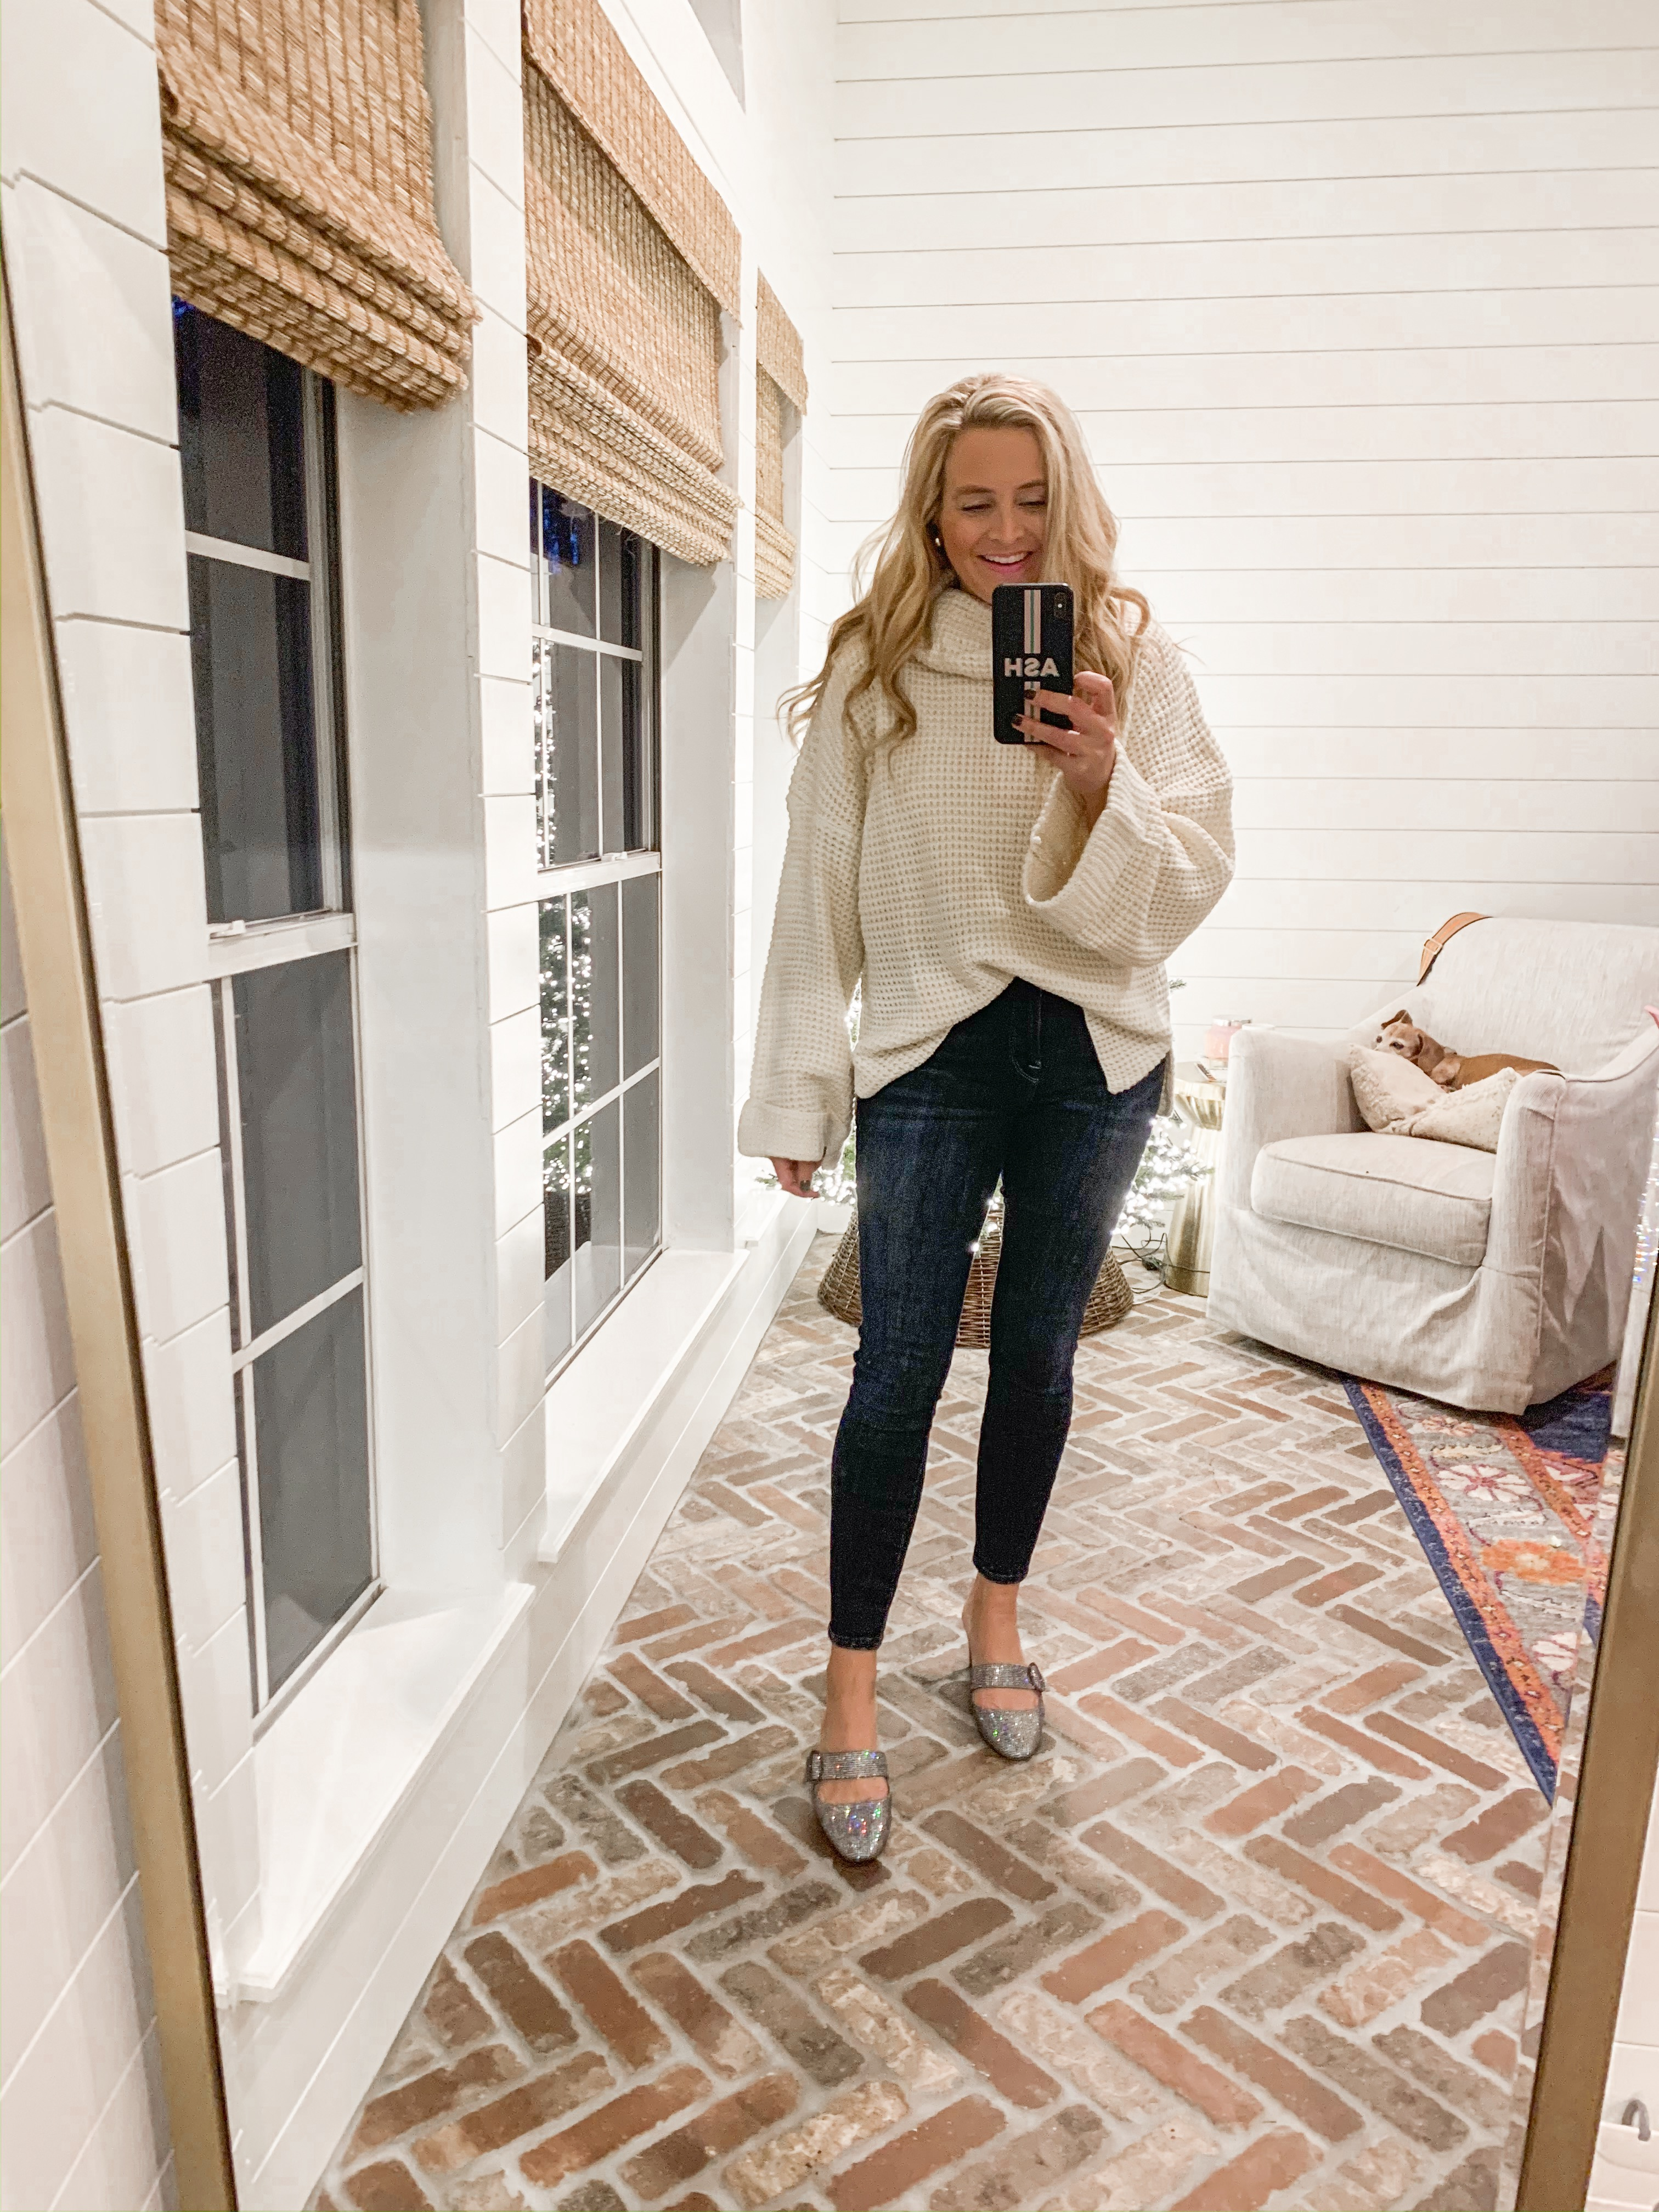 Amazon Haul by popular Houston fashion blog, Fancy Ashley: image of a woman wearing a Amazon Ybenlow Womens Turtleneck Oversized Sweater, Nordstrom Good Legs Ankle Skinny Jeans GOOD AMERICAN, and Amazon SJP by Sarah Jessica Parker Women's Vamp Mary Jane Block Heel Mule.